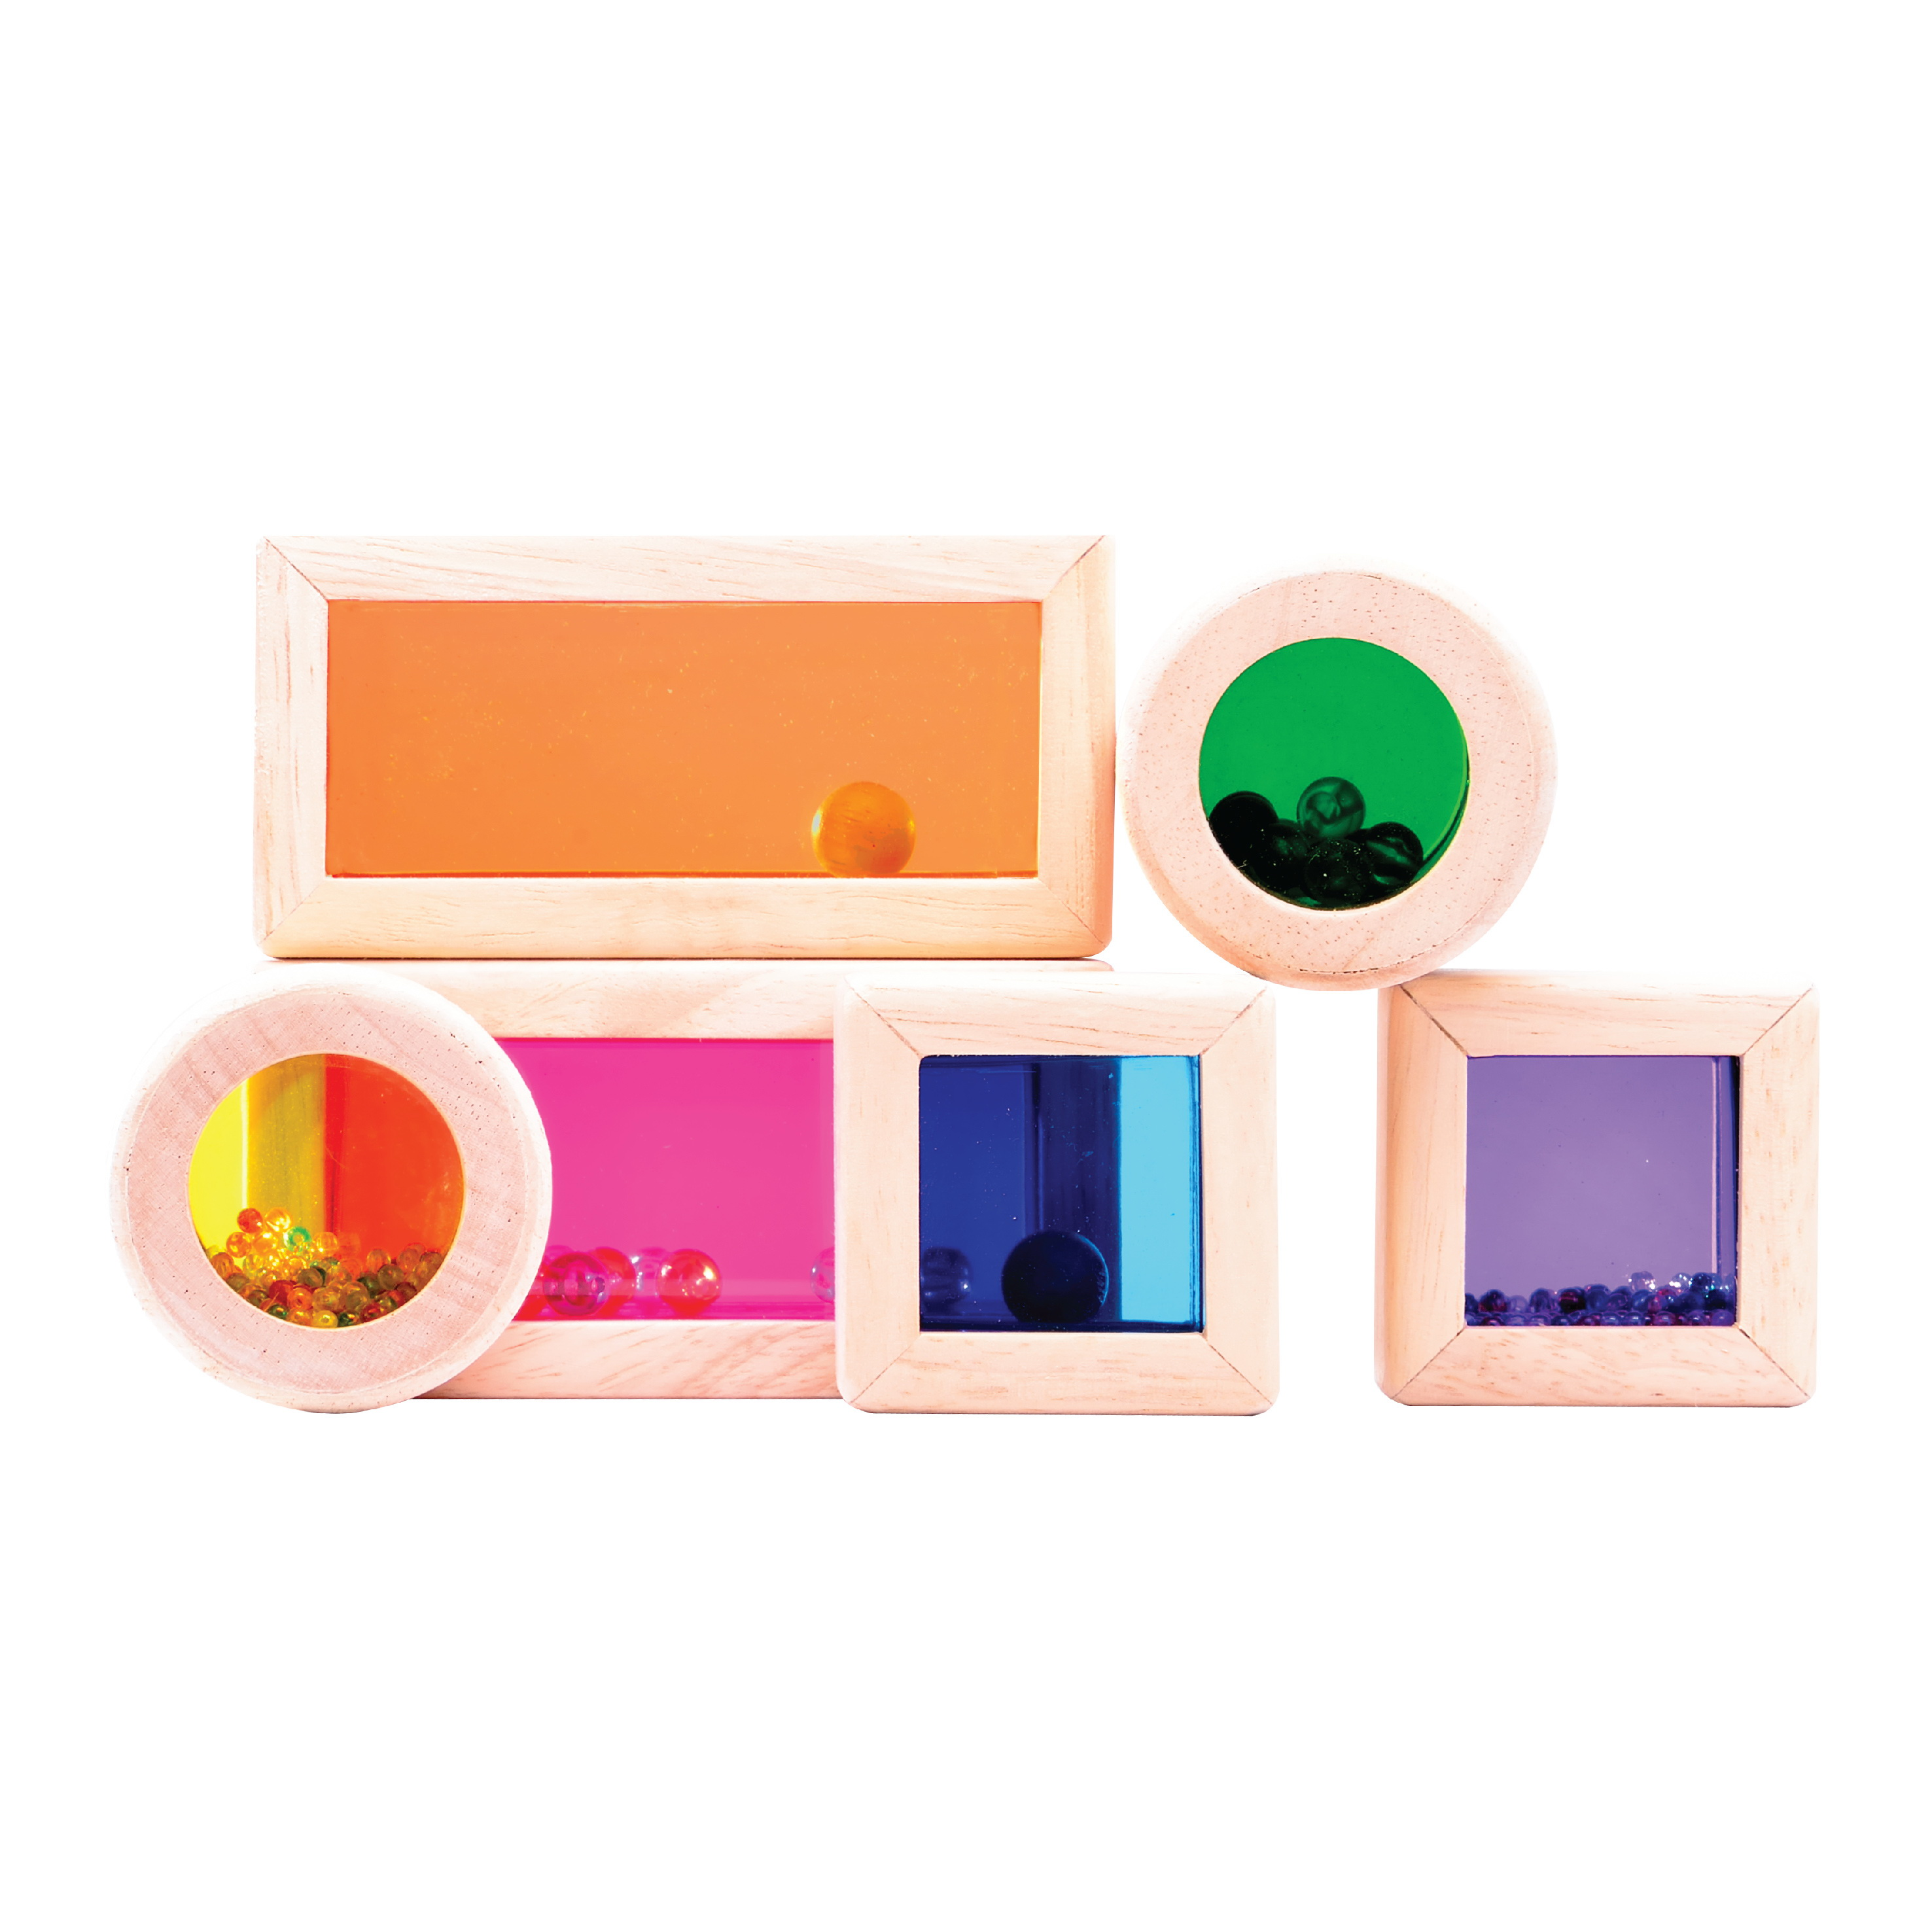 WW-1088 RAINBOW SOUND BLOCKS | Wonderworldtoy - Natural toys for smart play